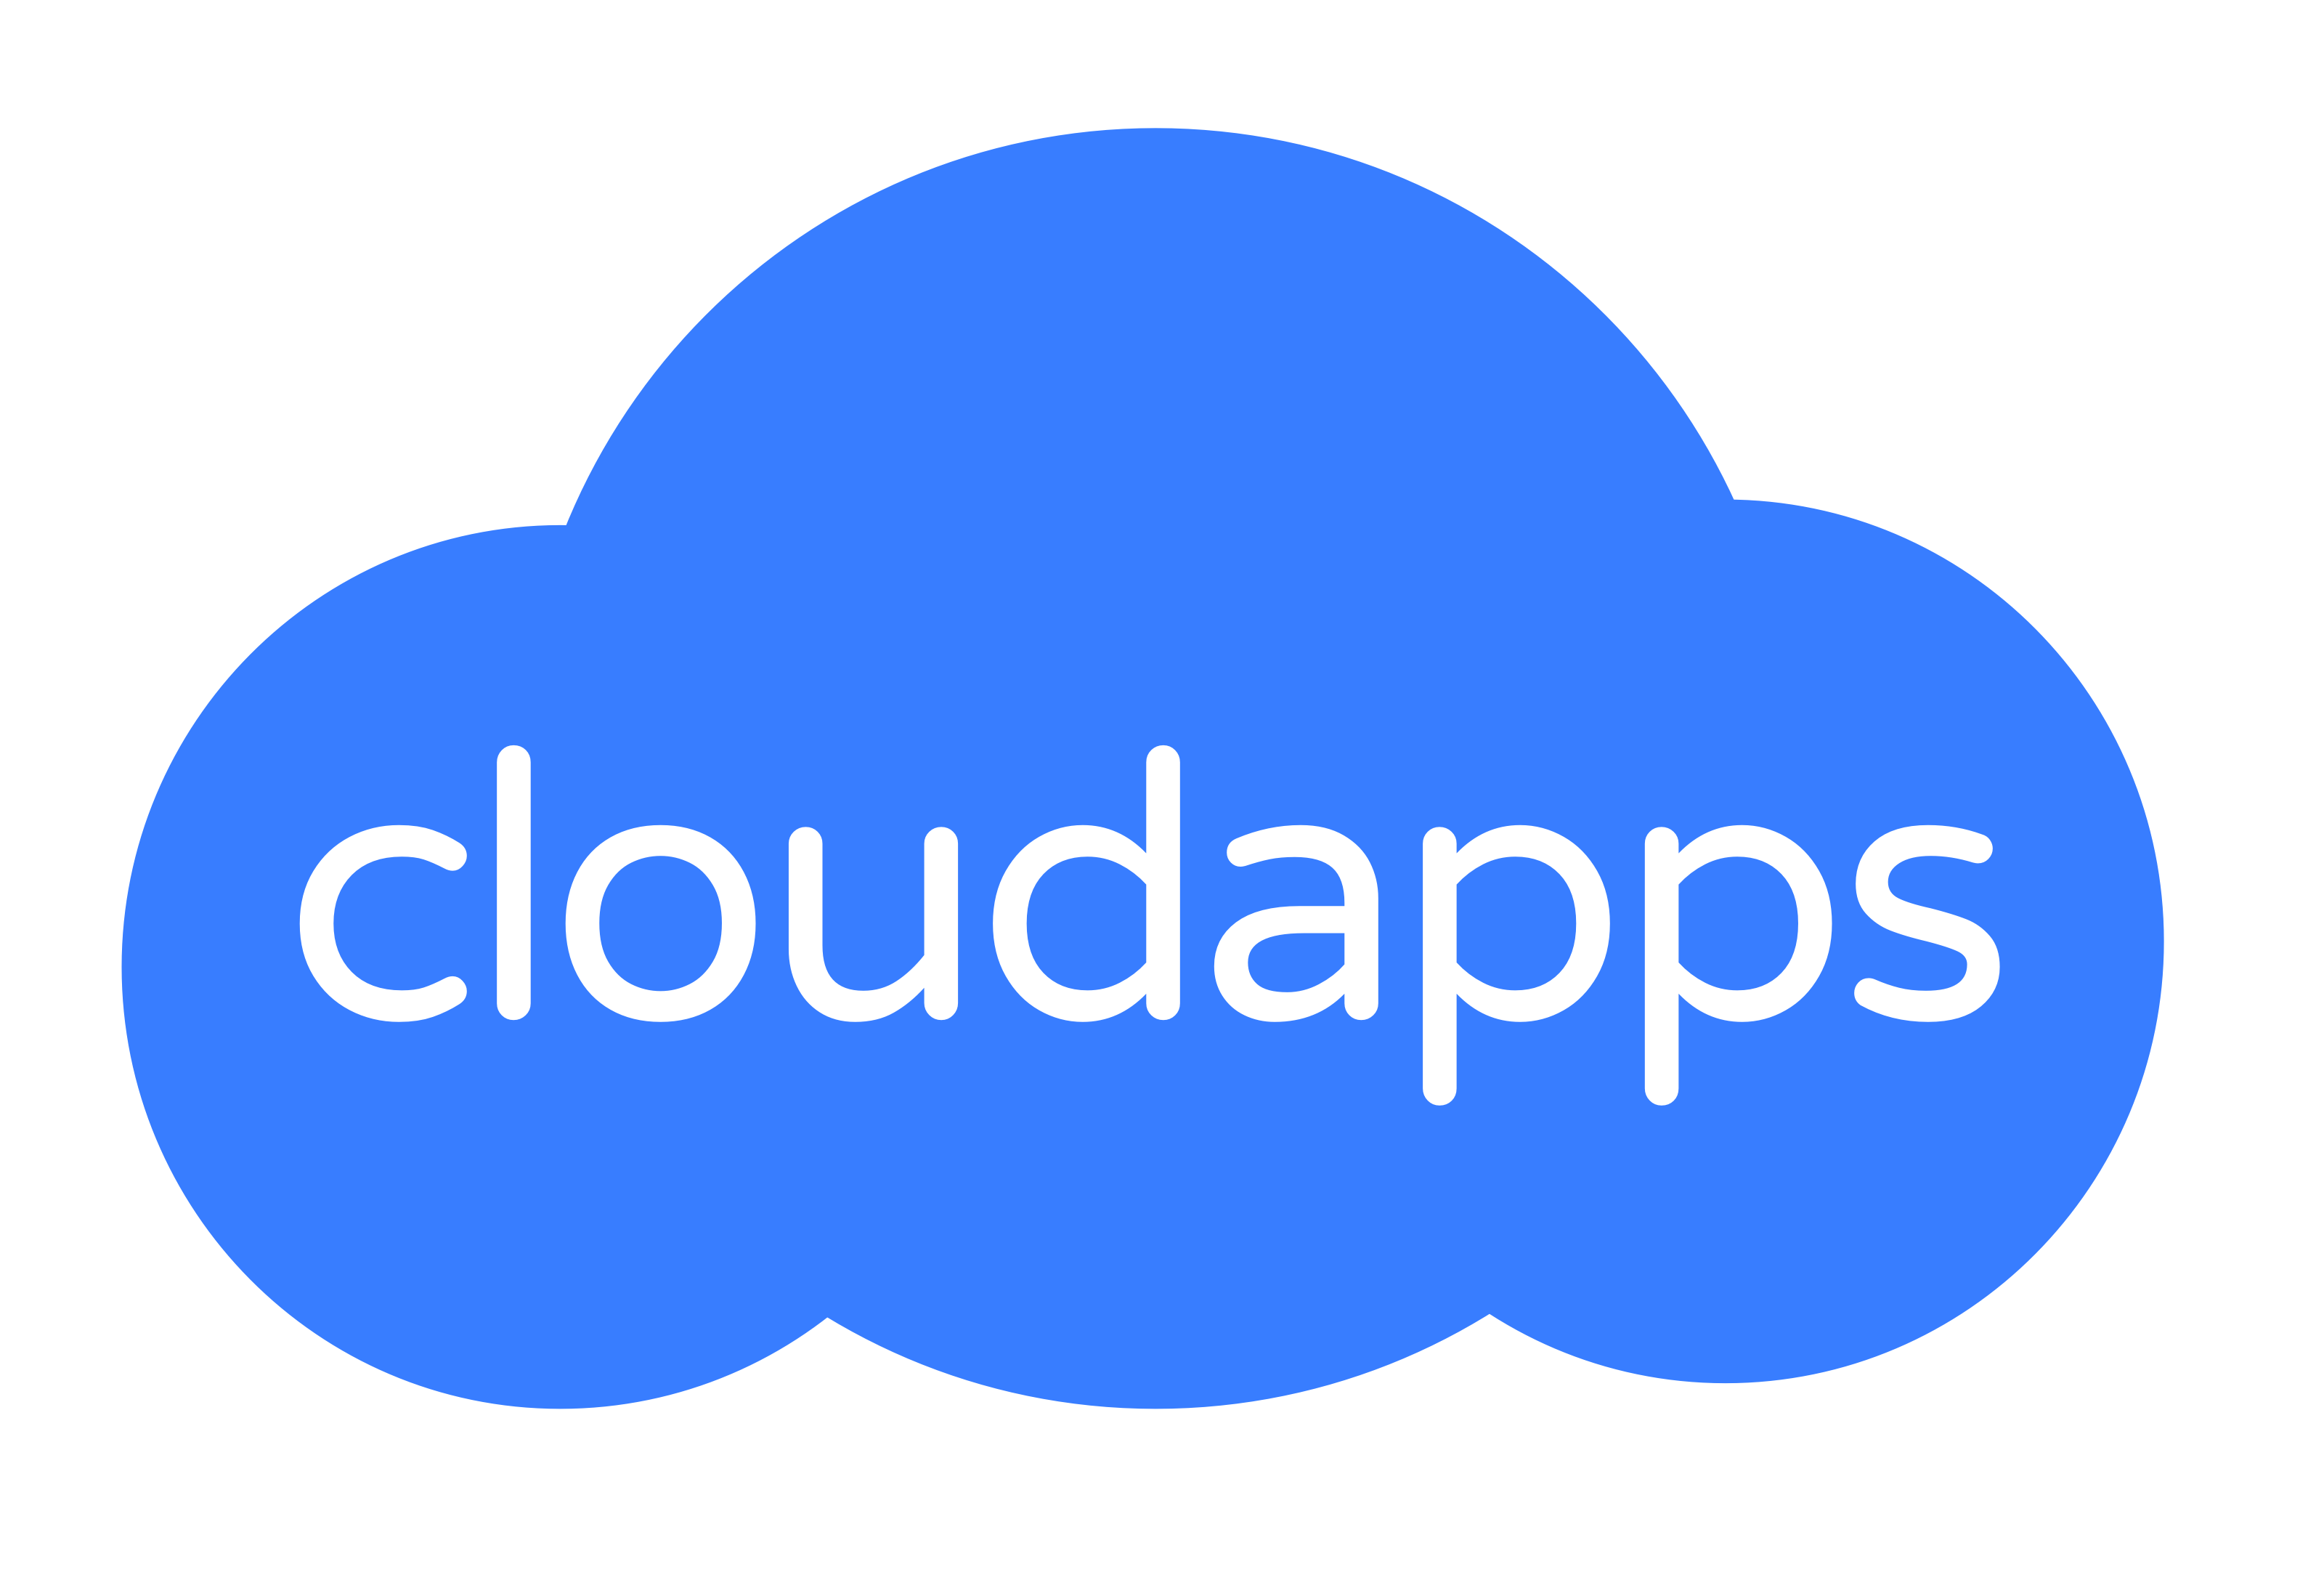 cloudapps-old-colour-x1000